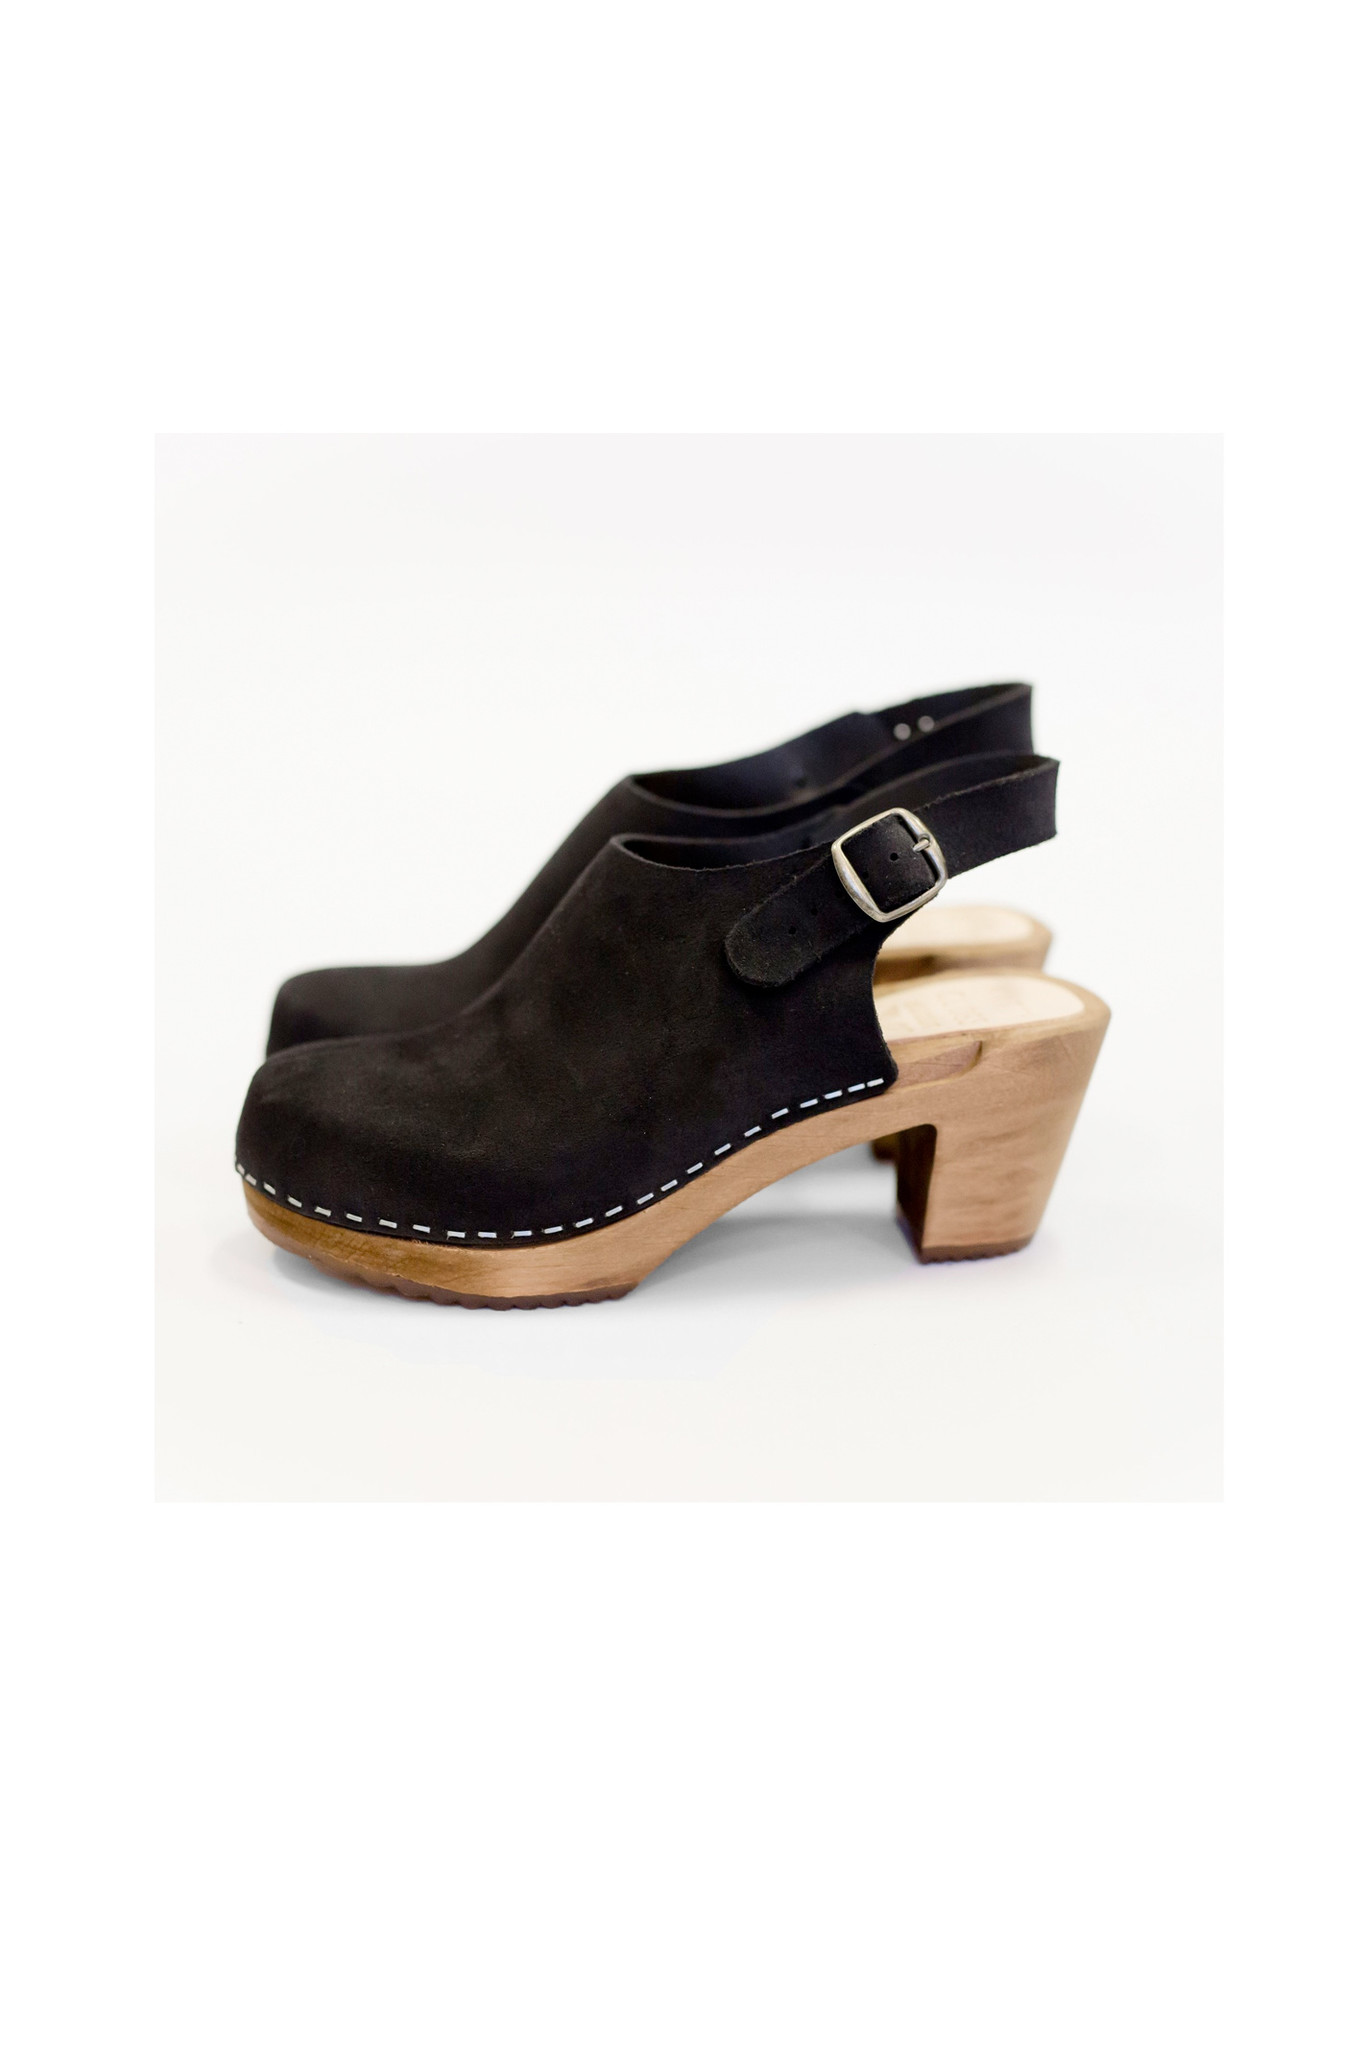 Sling back clogs